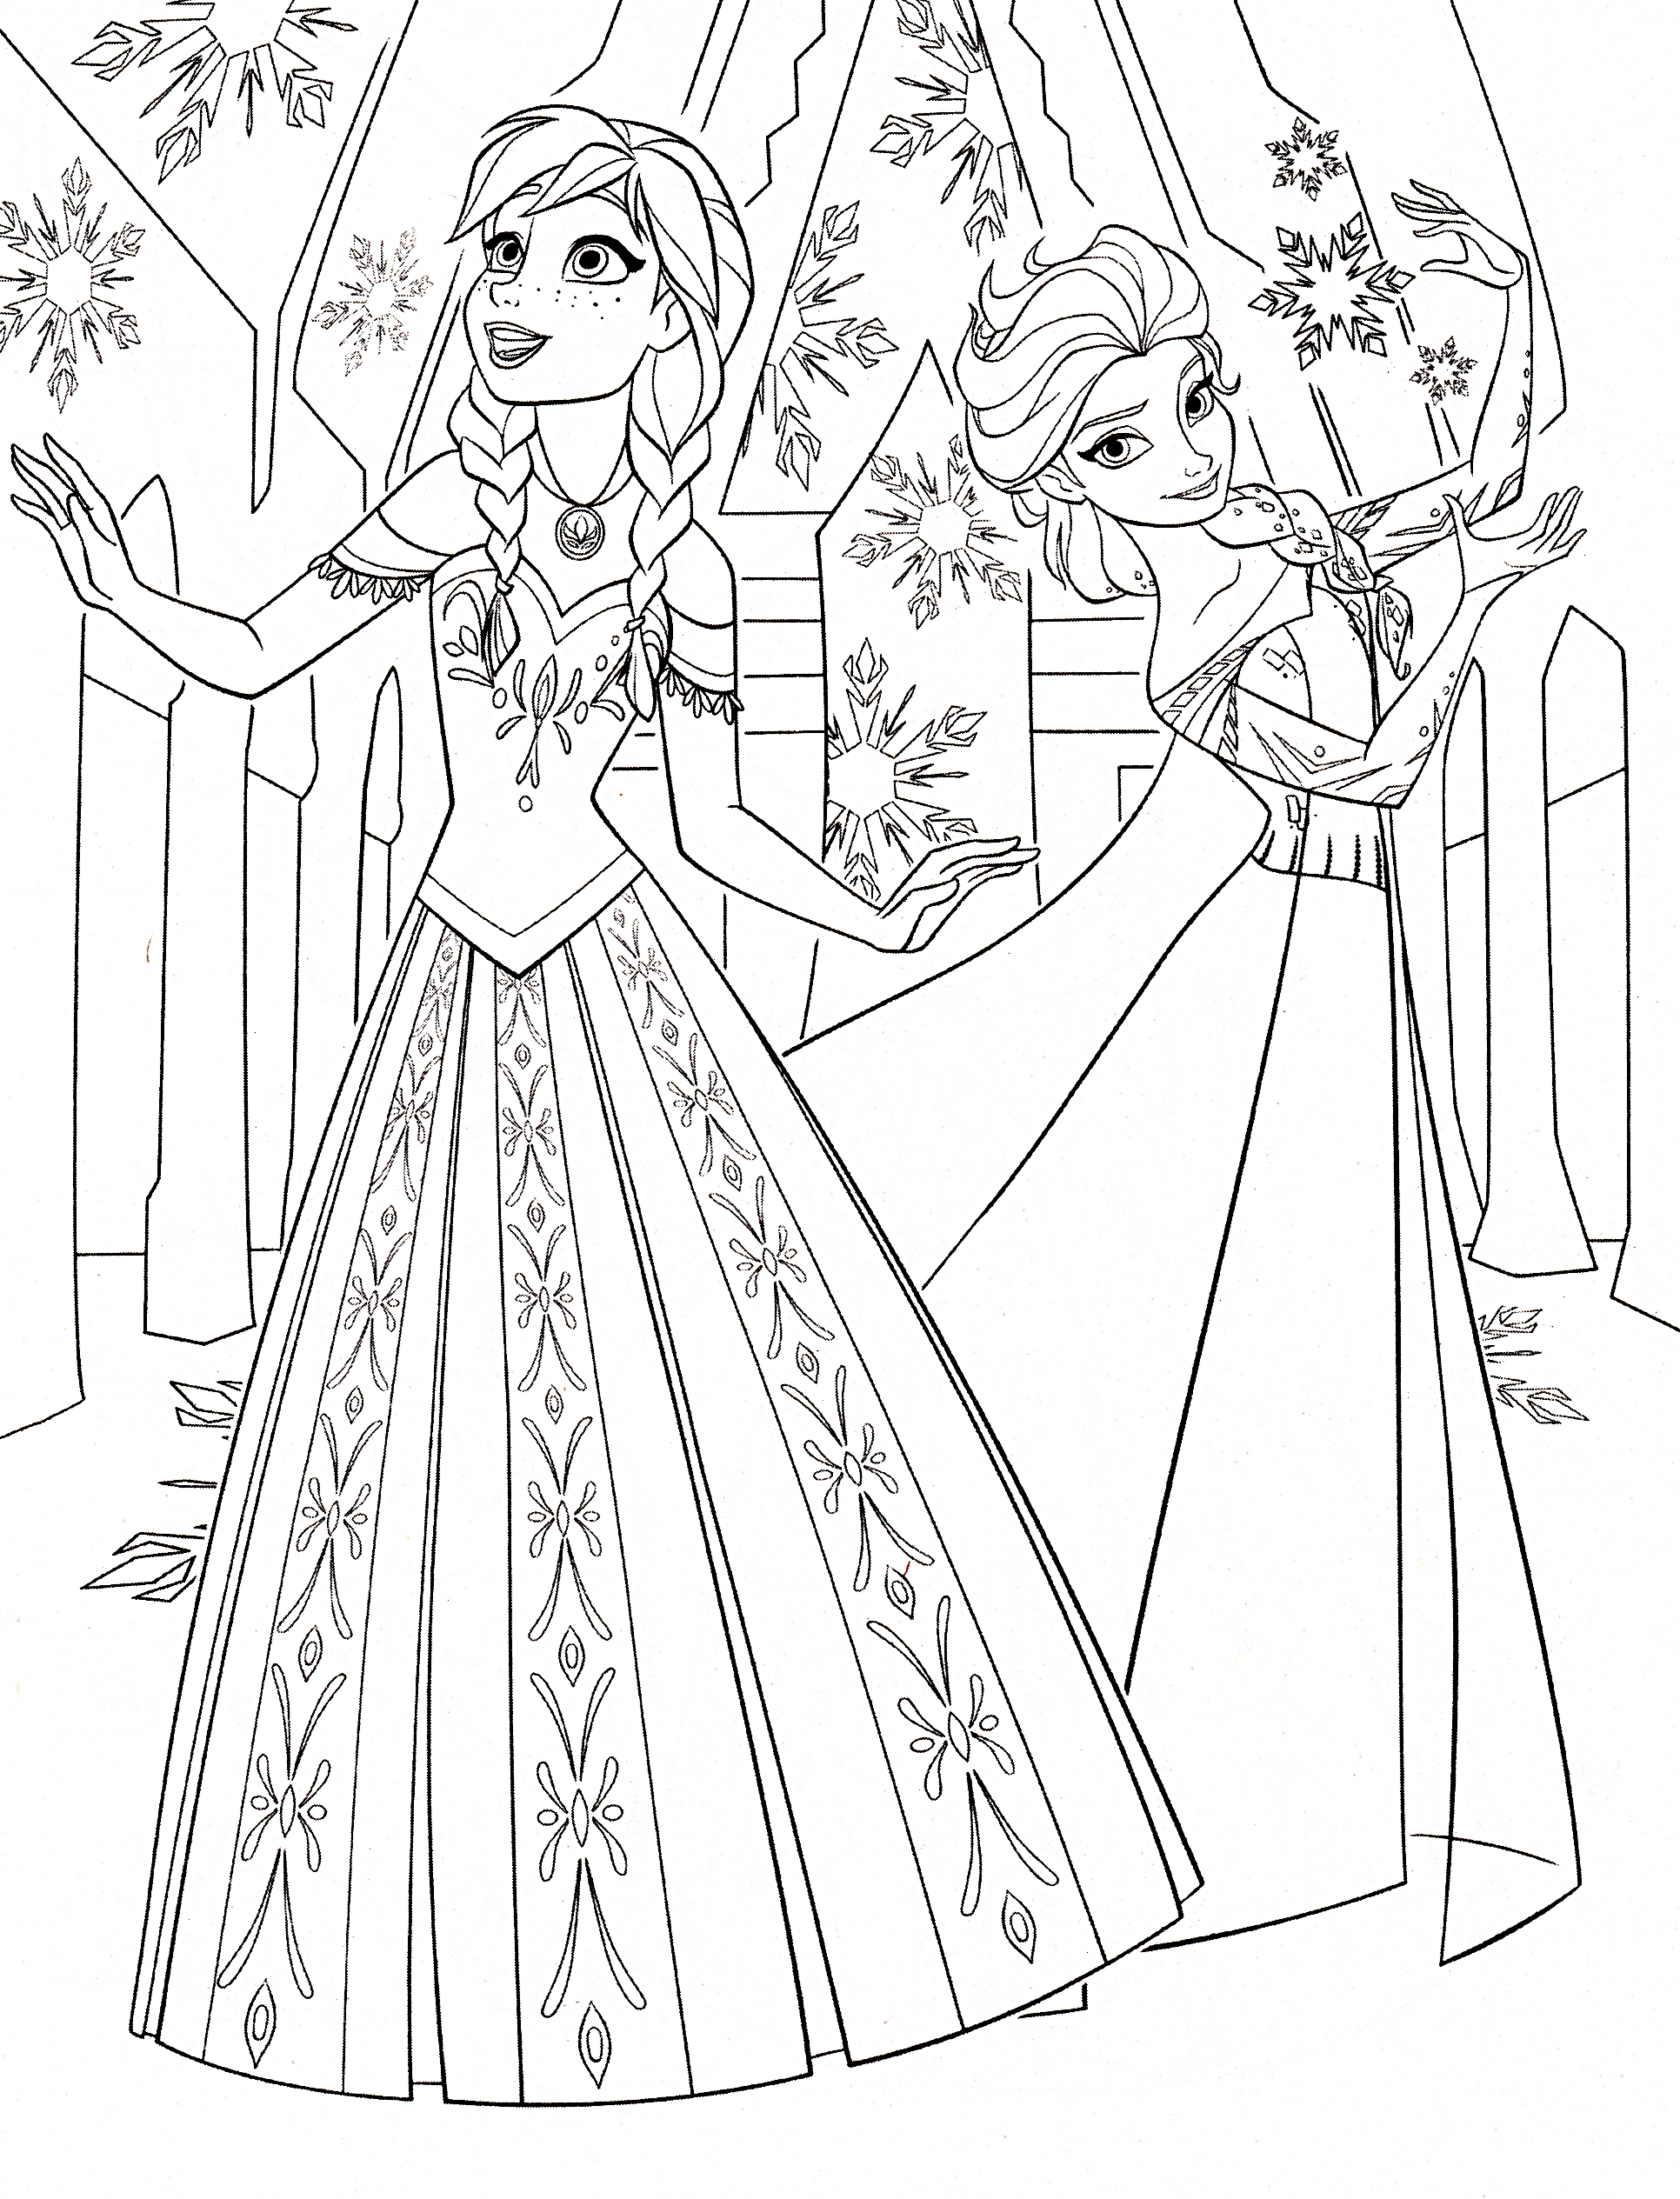 Free Printable Coloring Pages Elsa And Anna